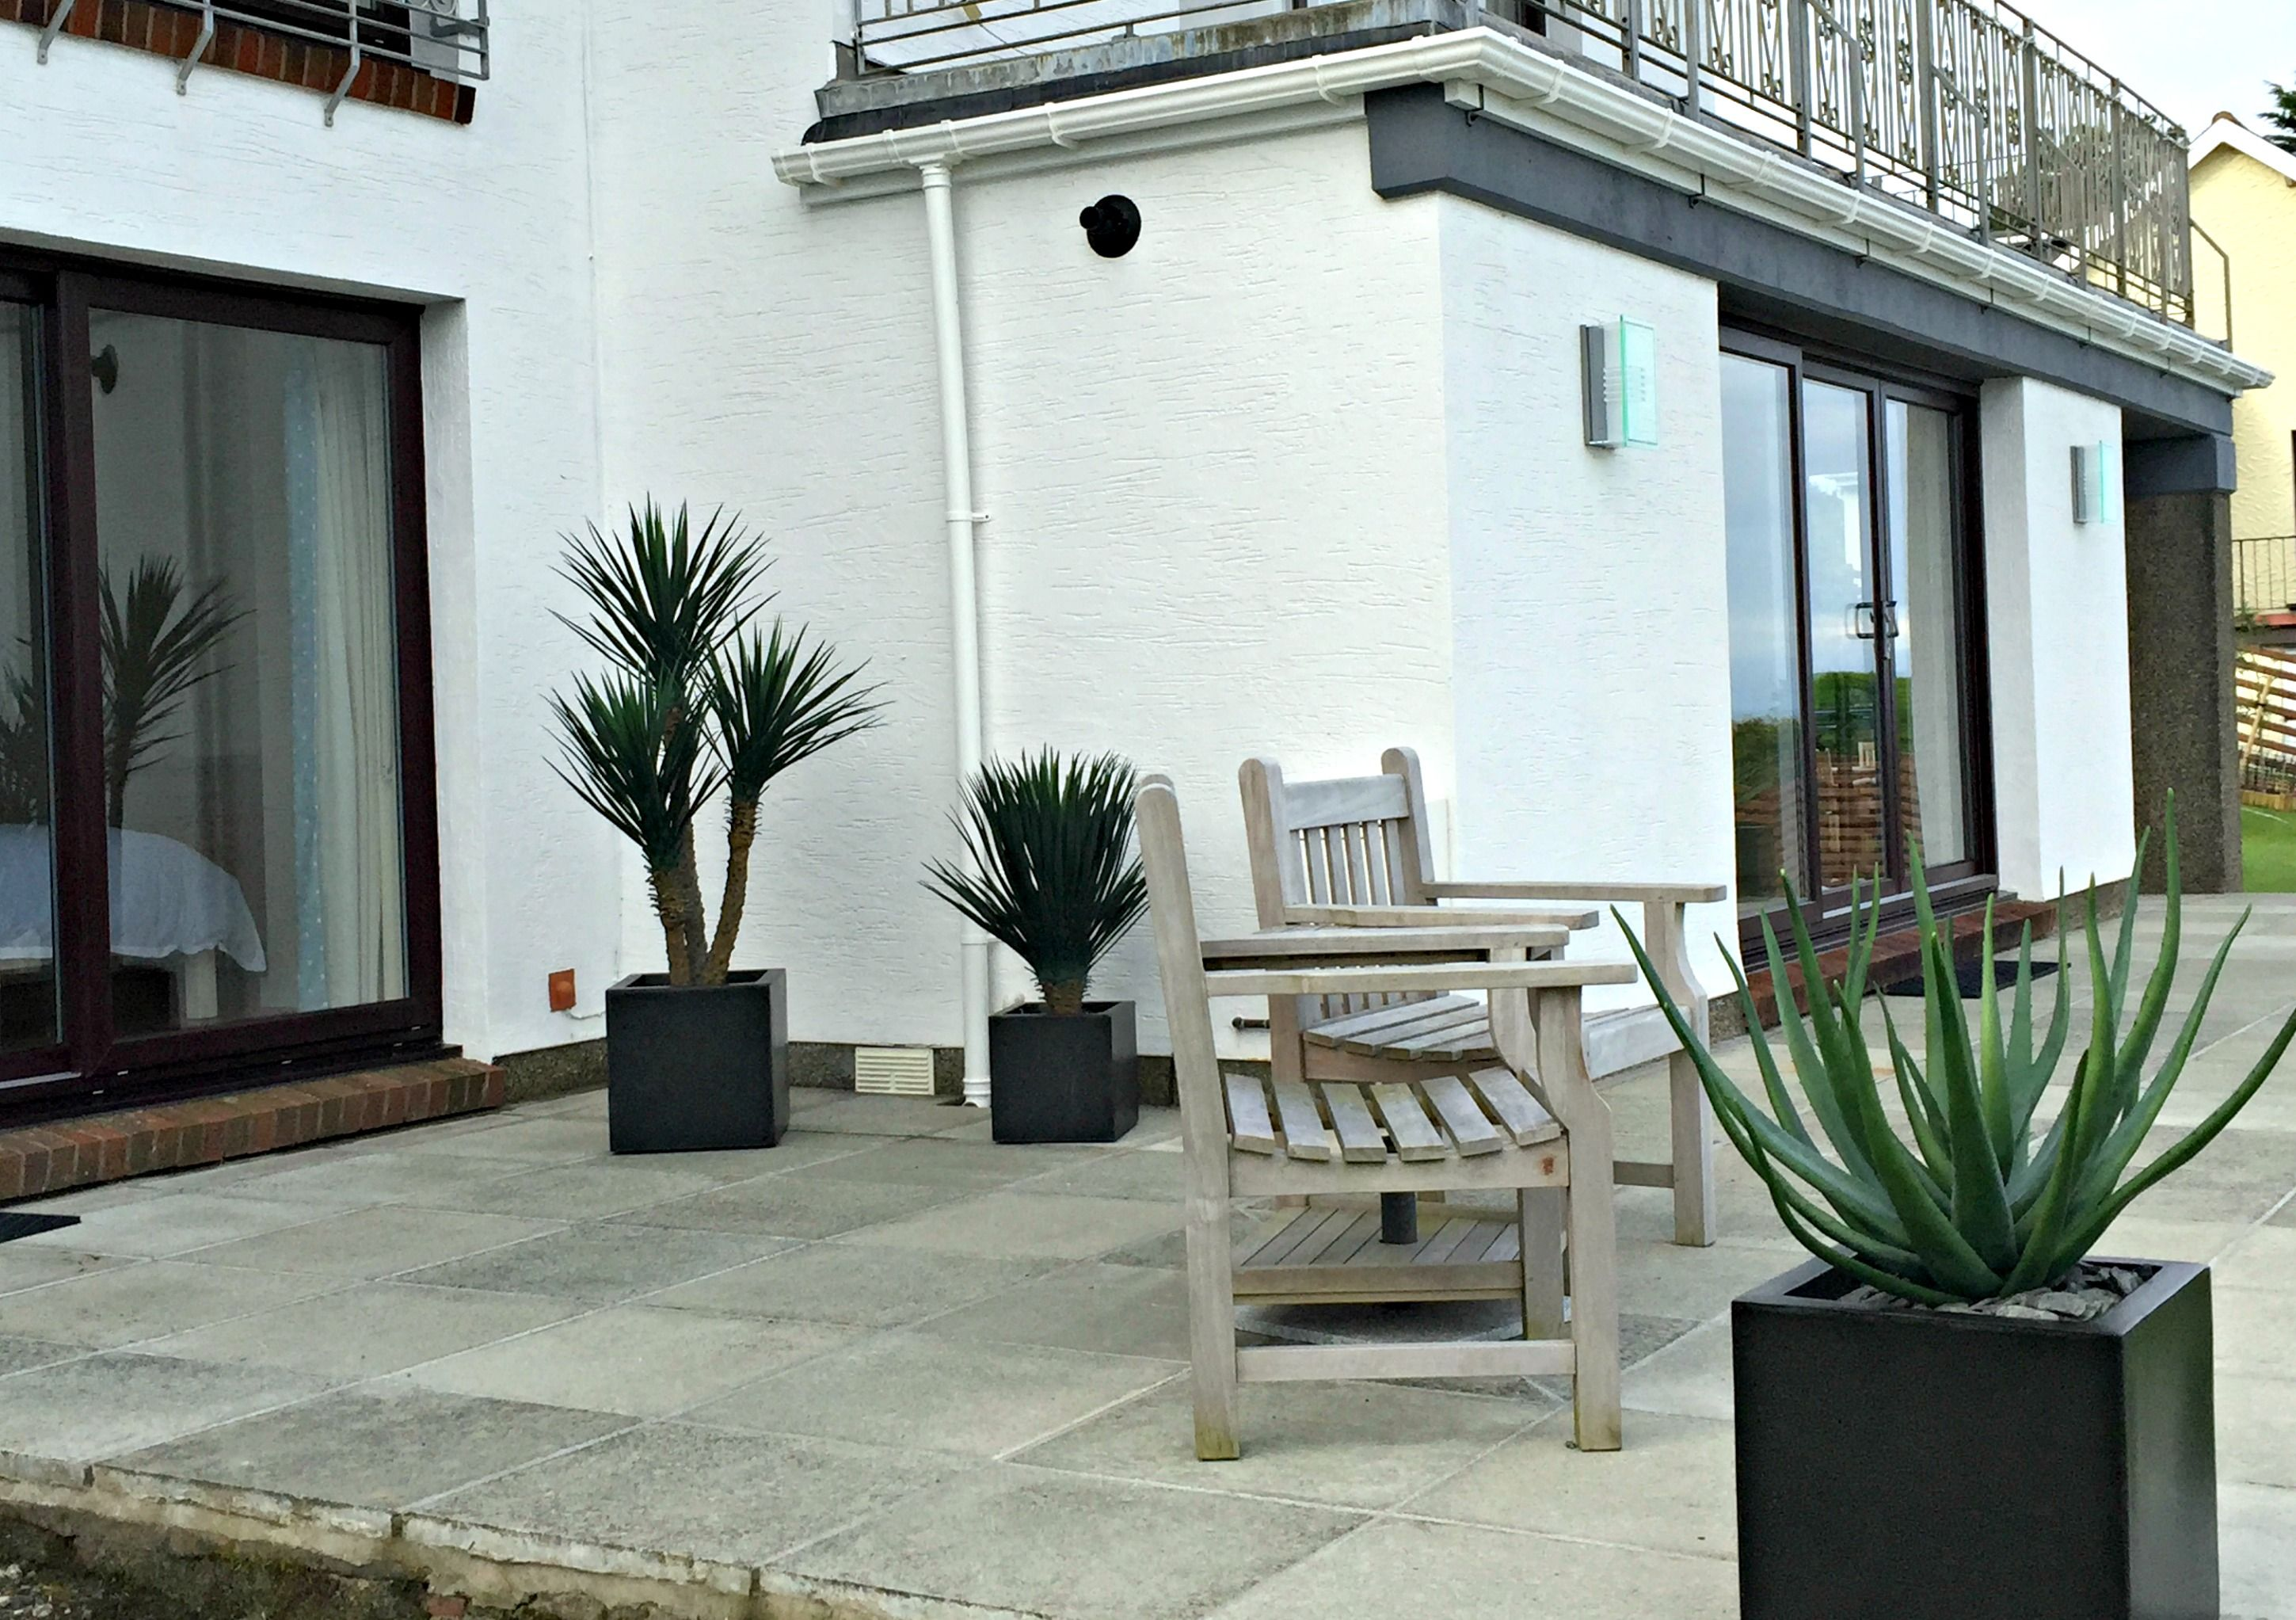 A Patio, Showing Artificial Aloe Vera, And Fake Yucca Plants.